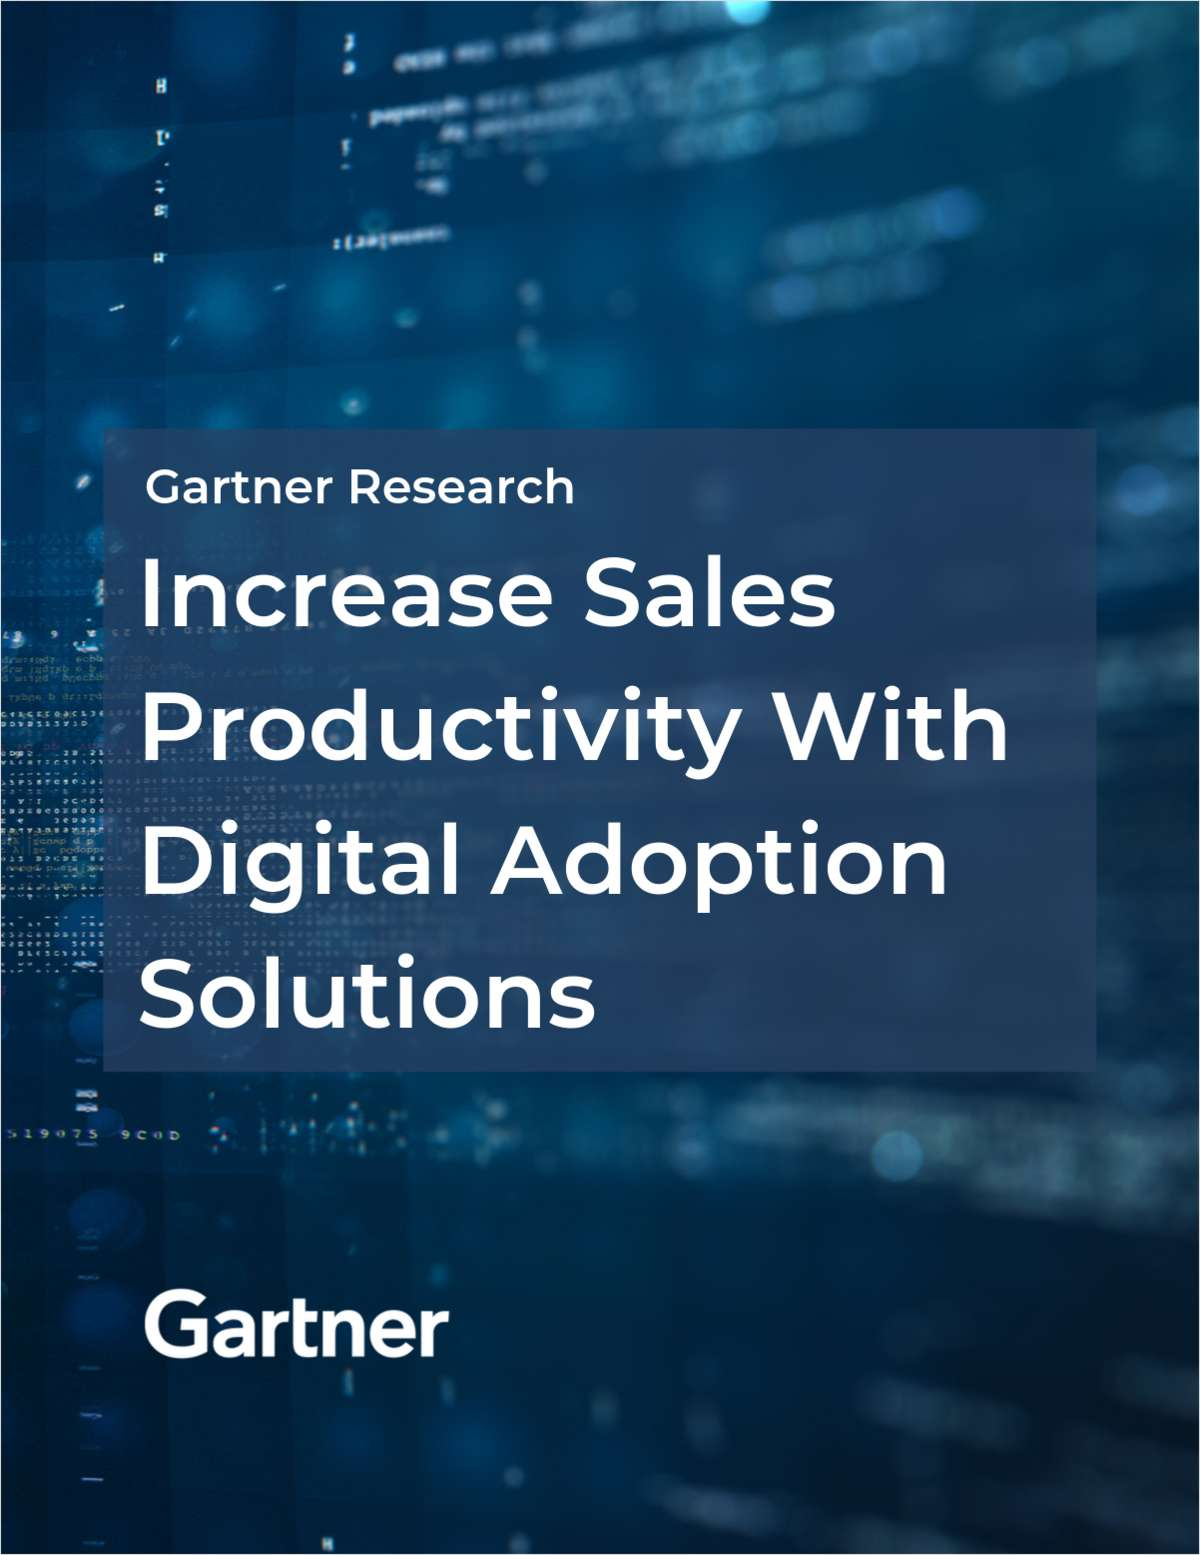 Gartner's Report - Save Time and Money With Better Adoption and Productivity